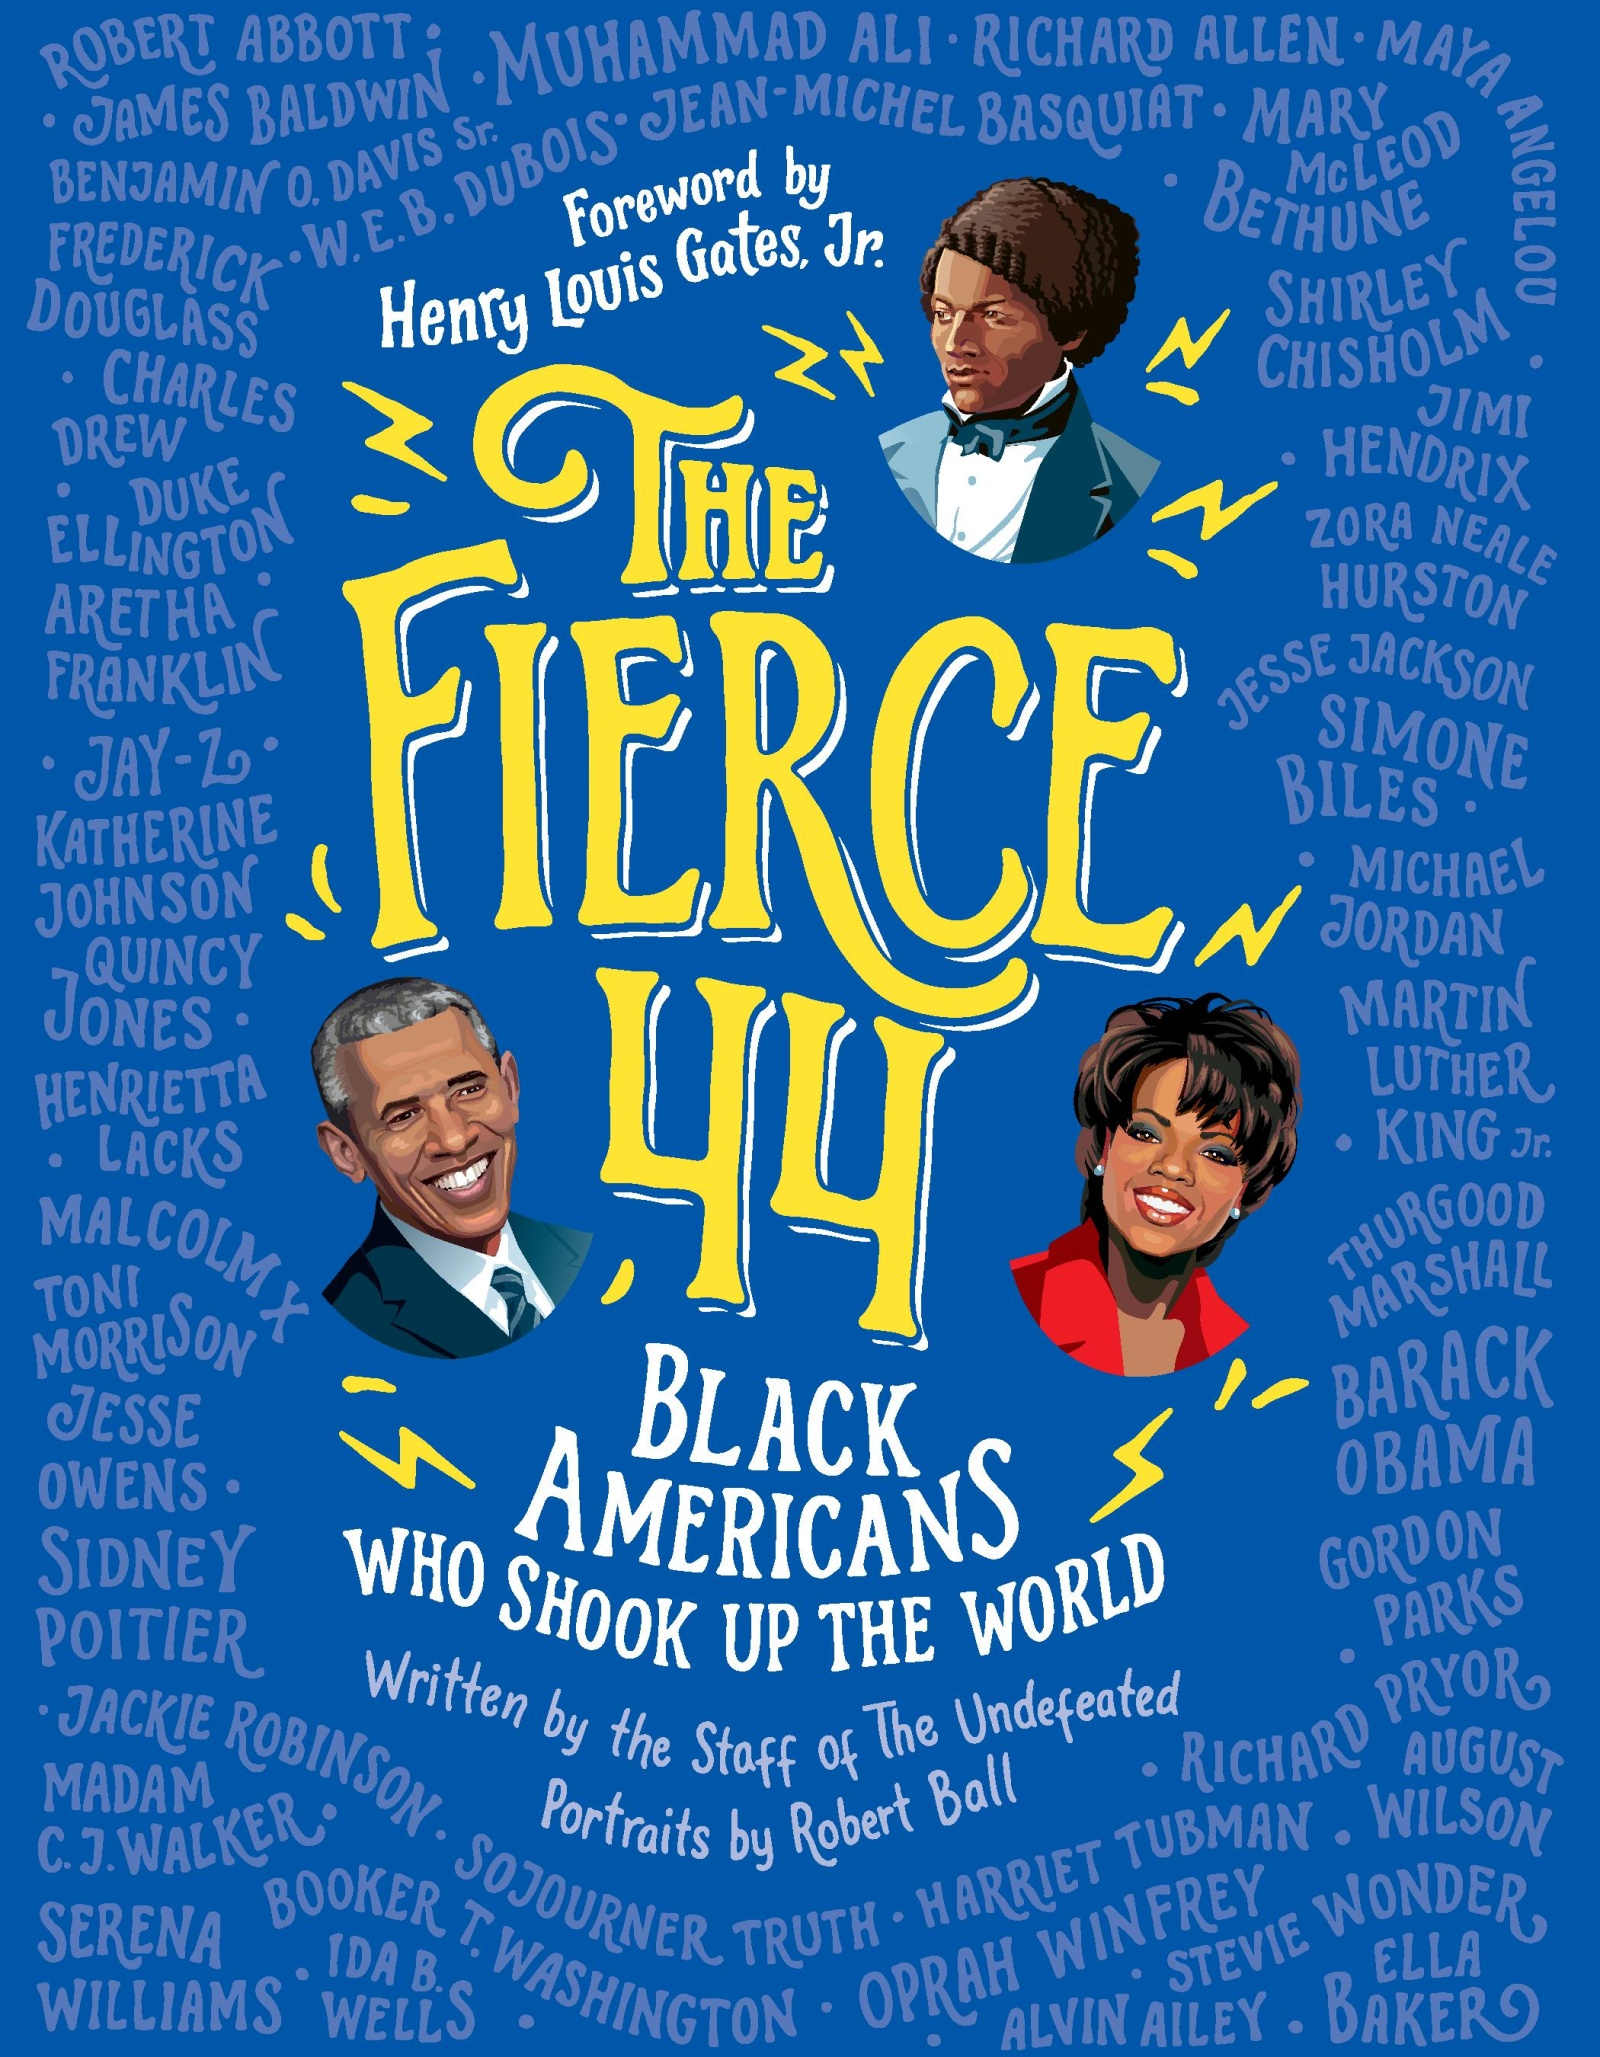 The Fierce 44 [electronic resource] : Black Americans Who Shook Up the World